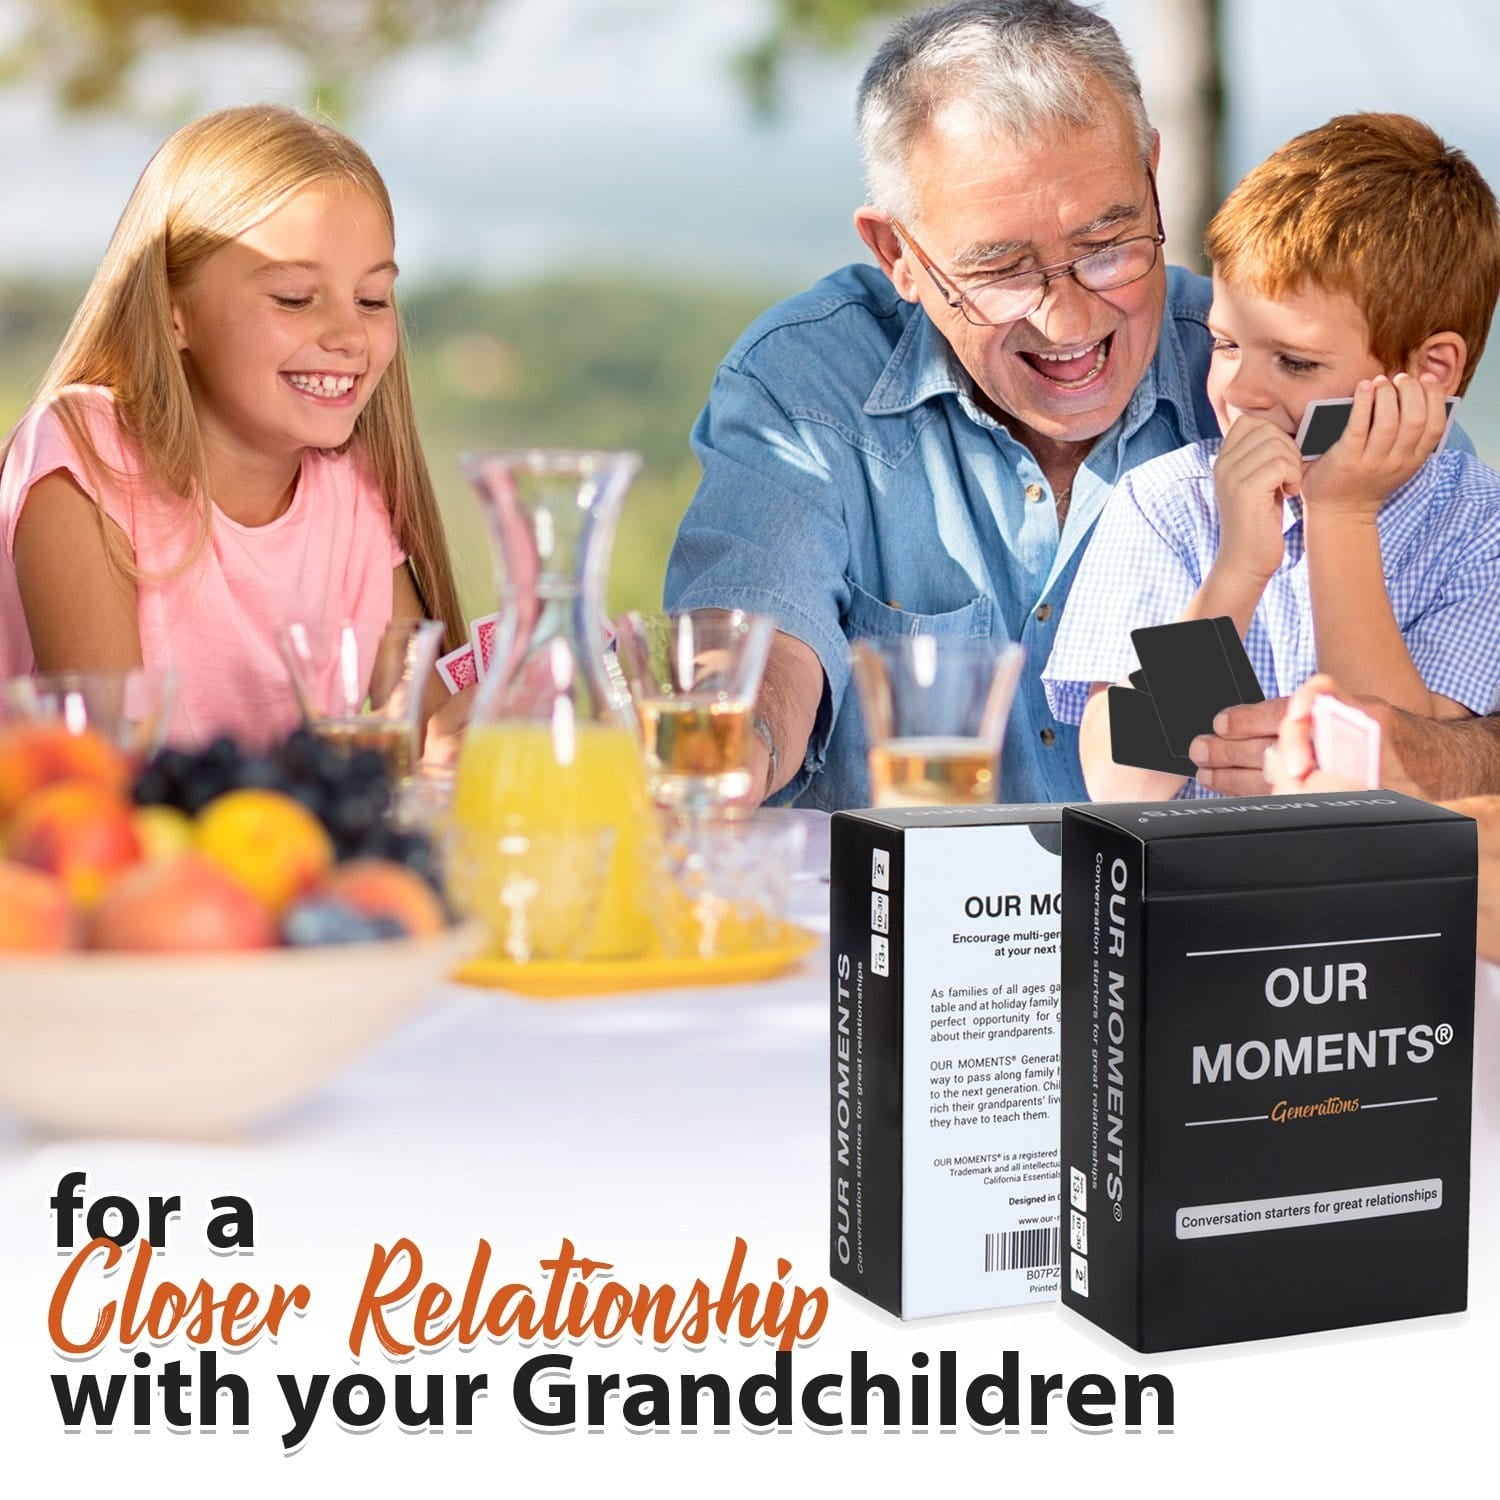 Generations Edition - Our Moments - Conversation Starters For Great Relationships